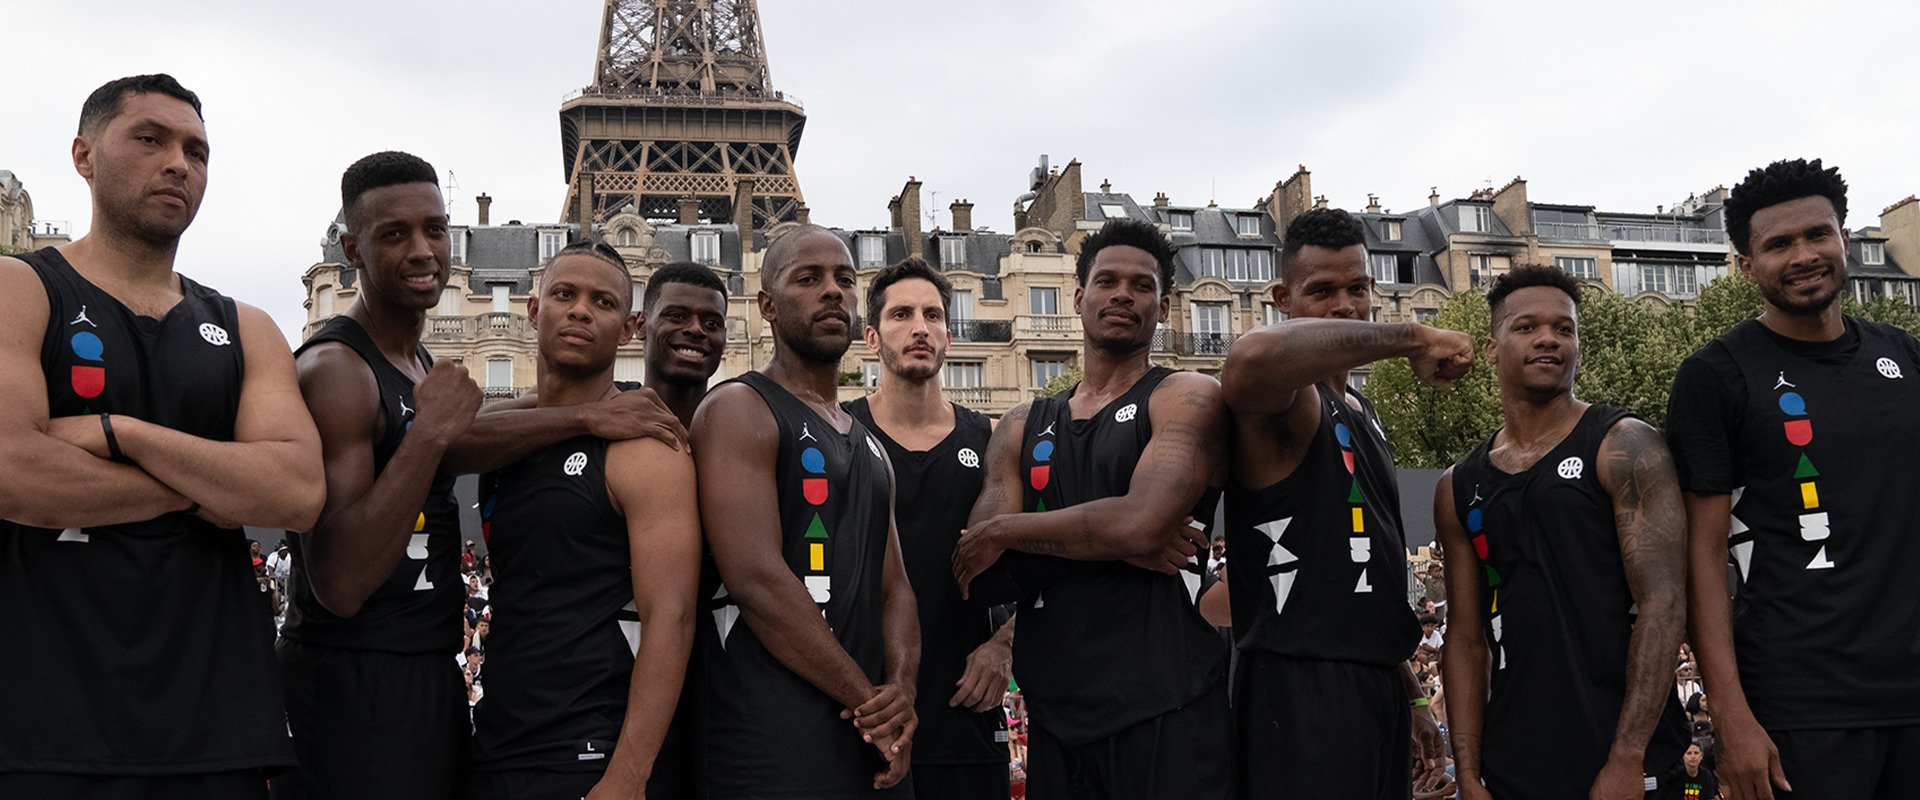 QUAI 54 - A Basketball Landmark In Paris